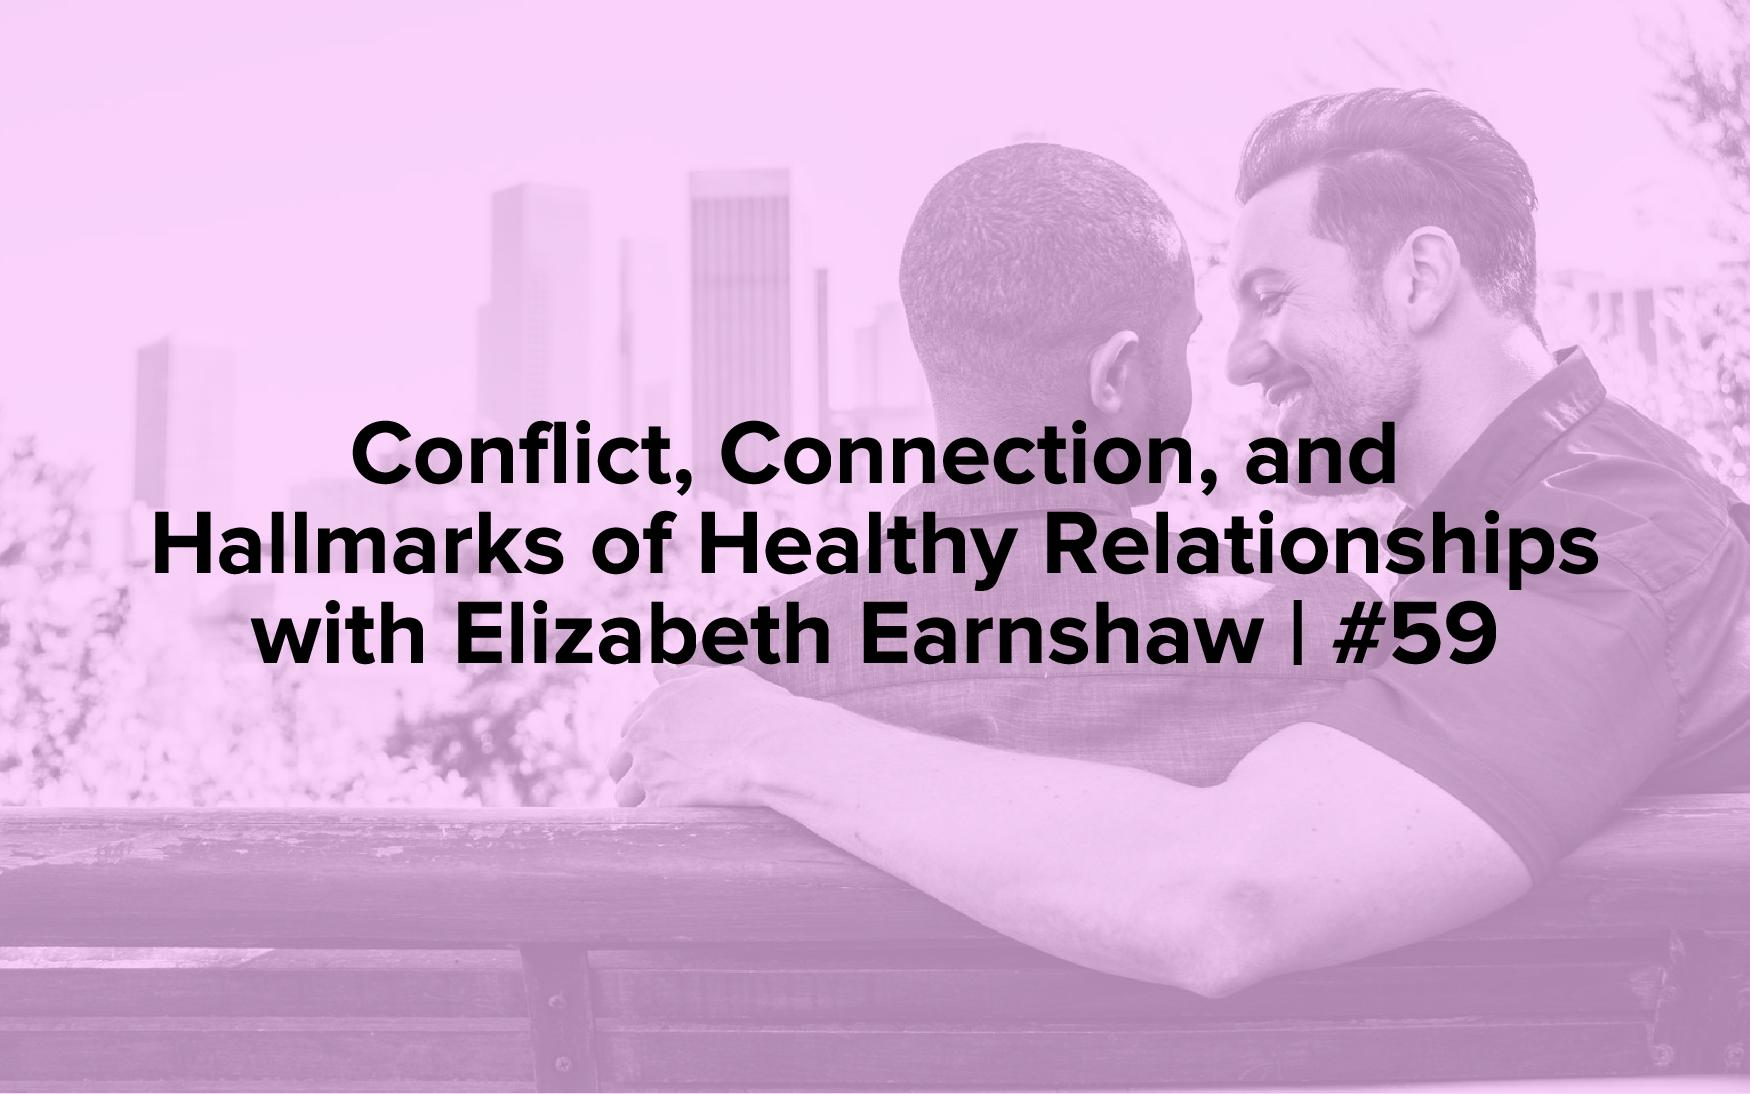 """Image text reads, """"Conflict, Connection, and Hallmarks of Healthy Relationships with Elizabeth Earnshaw 